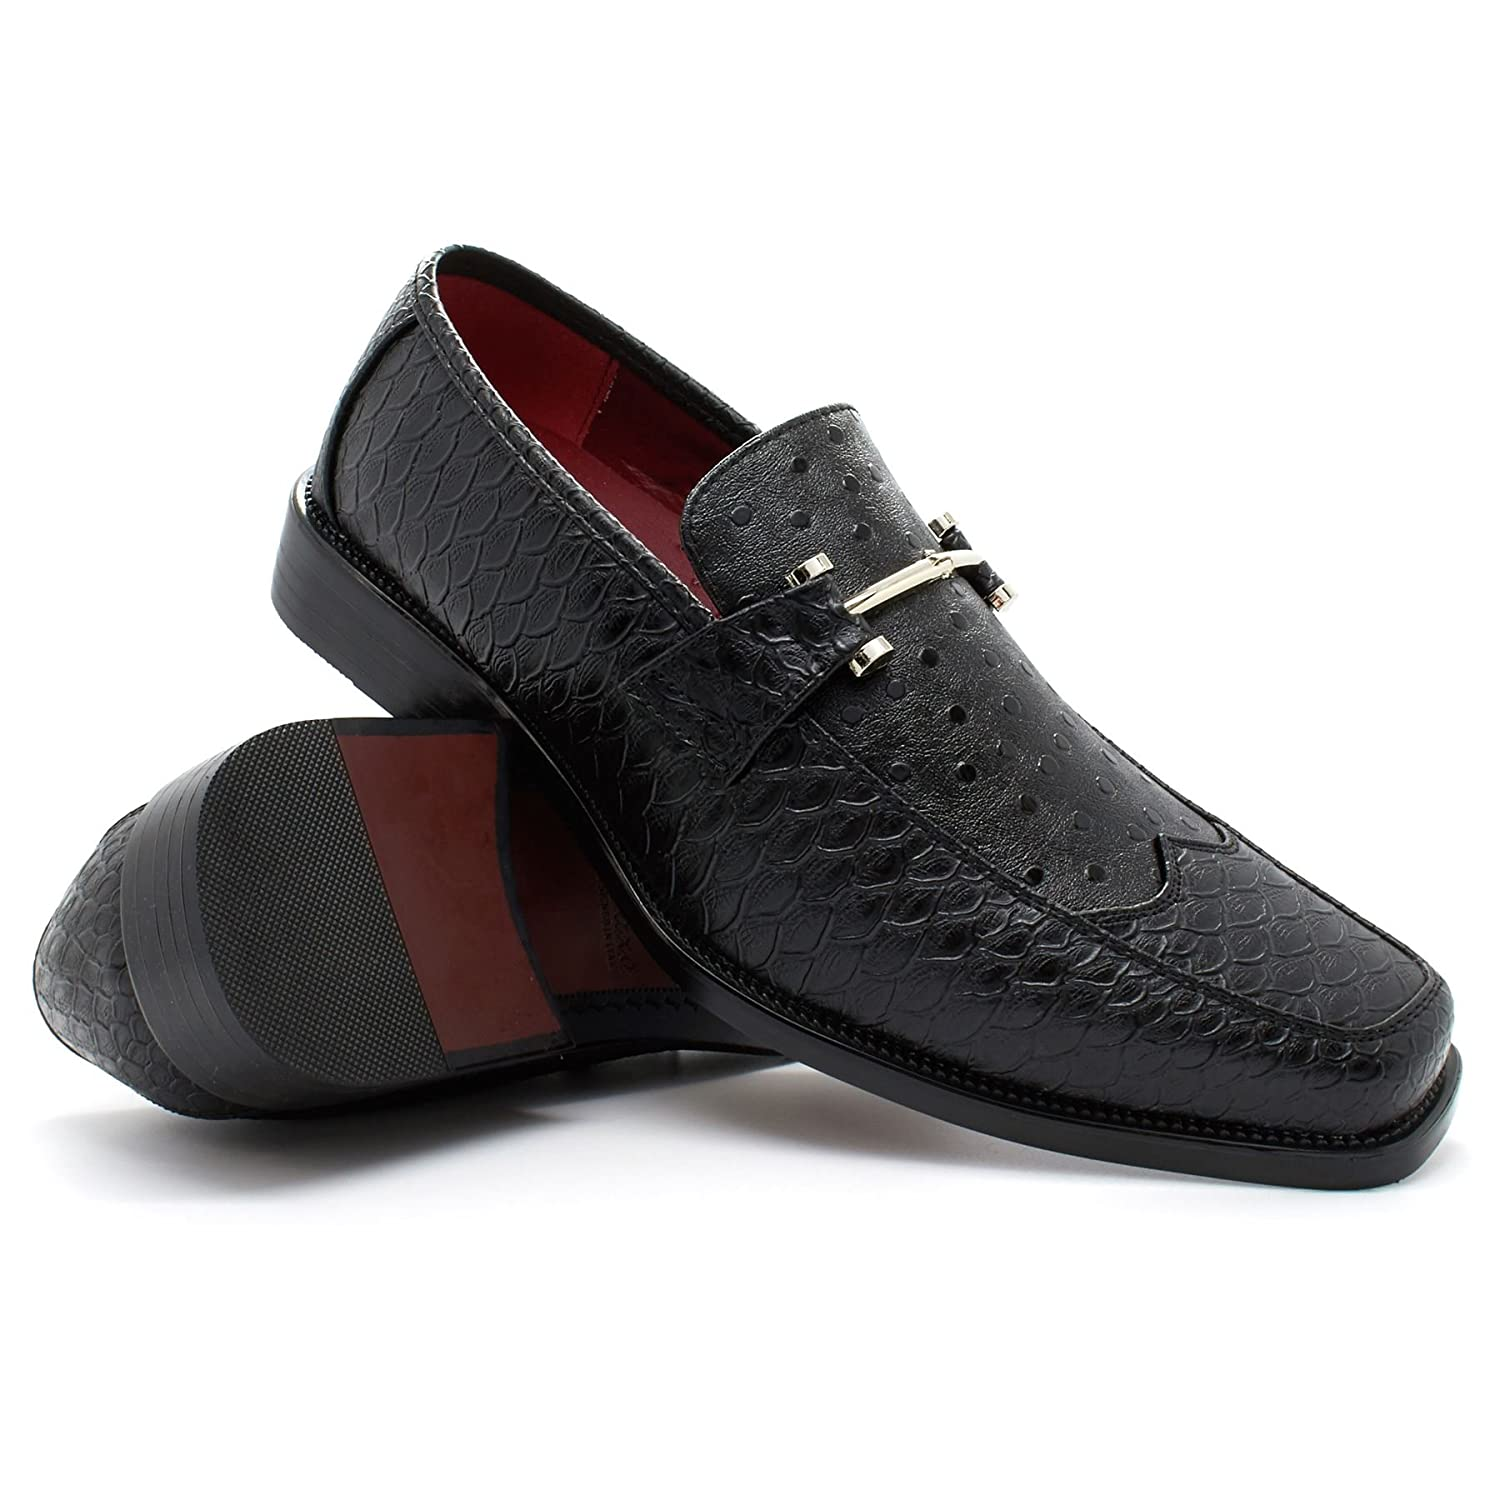 New Mens Italian Style Faux Snakeskin Shoes Formal Wedding Slip On Buckle  6-11: Amazon.co.uk: Shoes & Bags